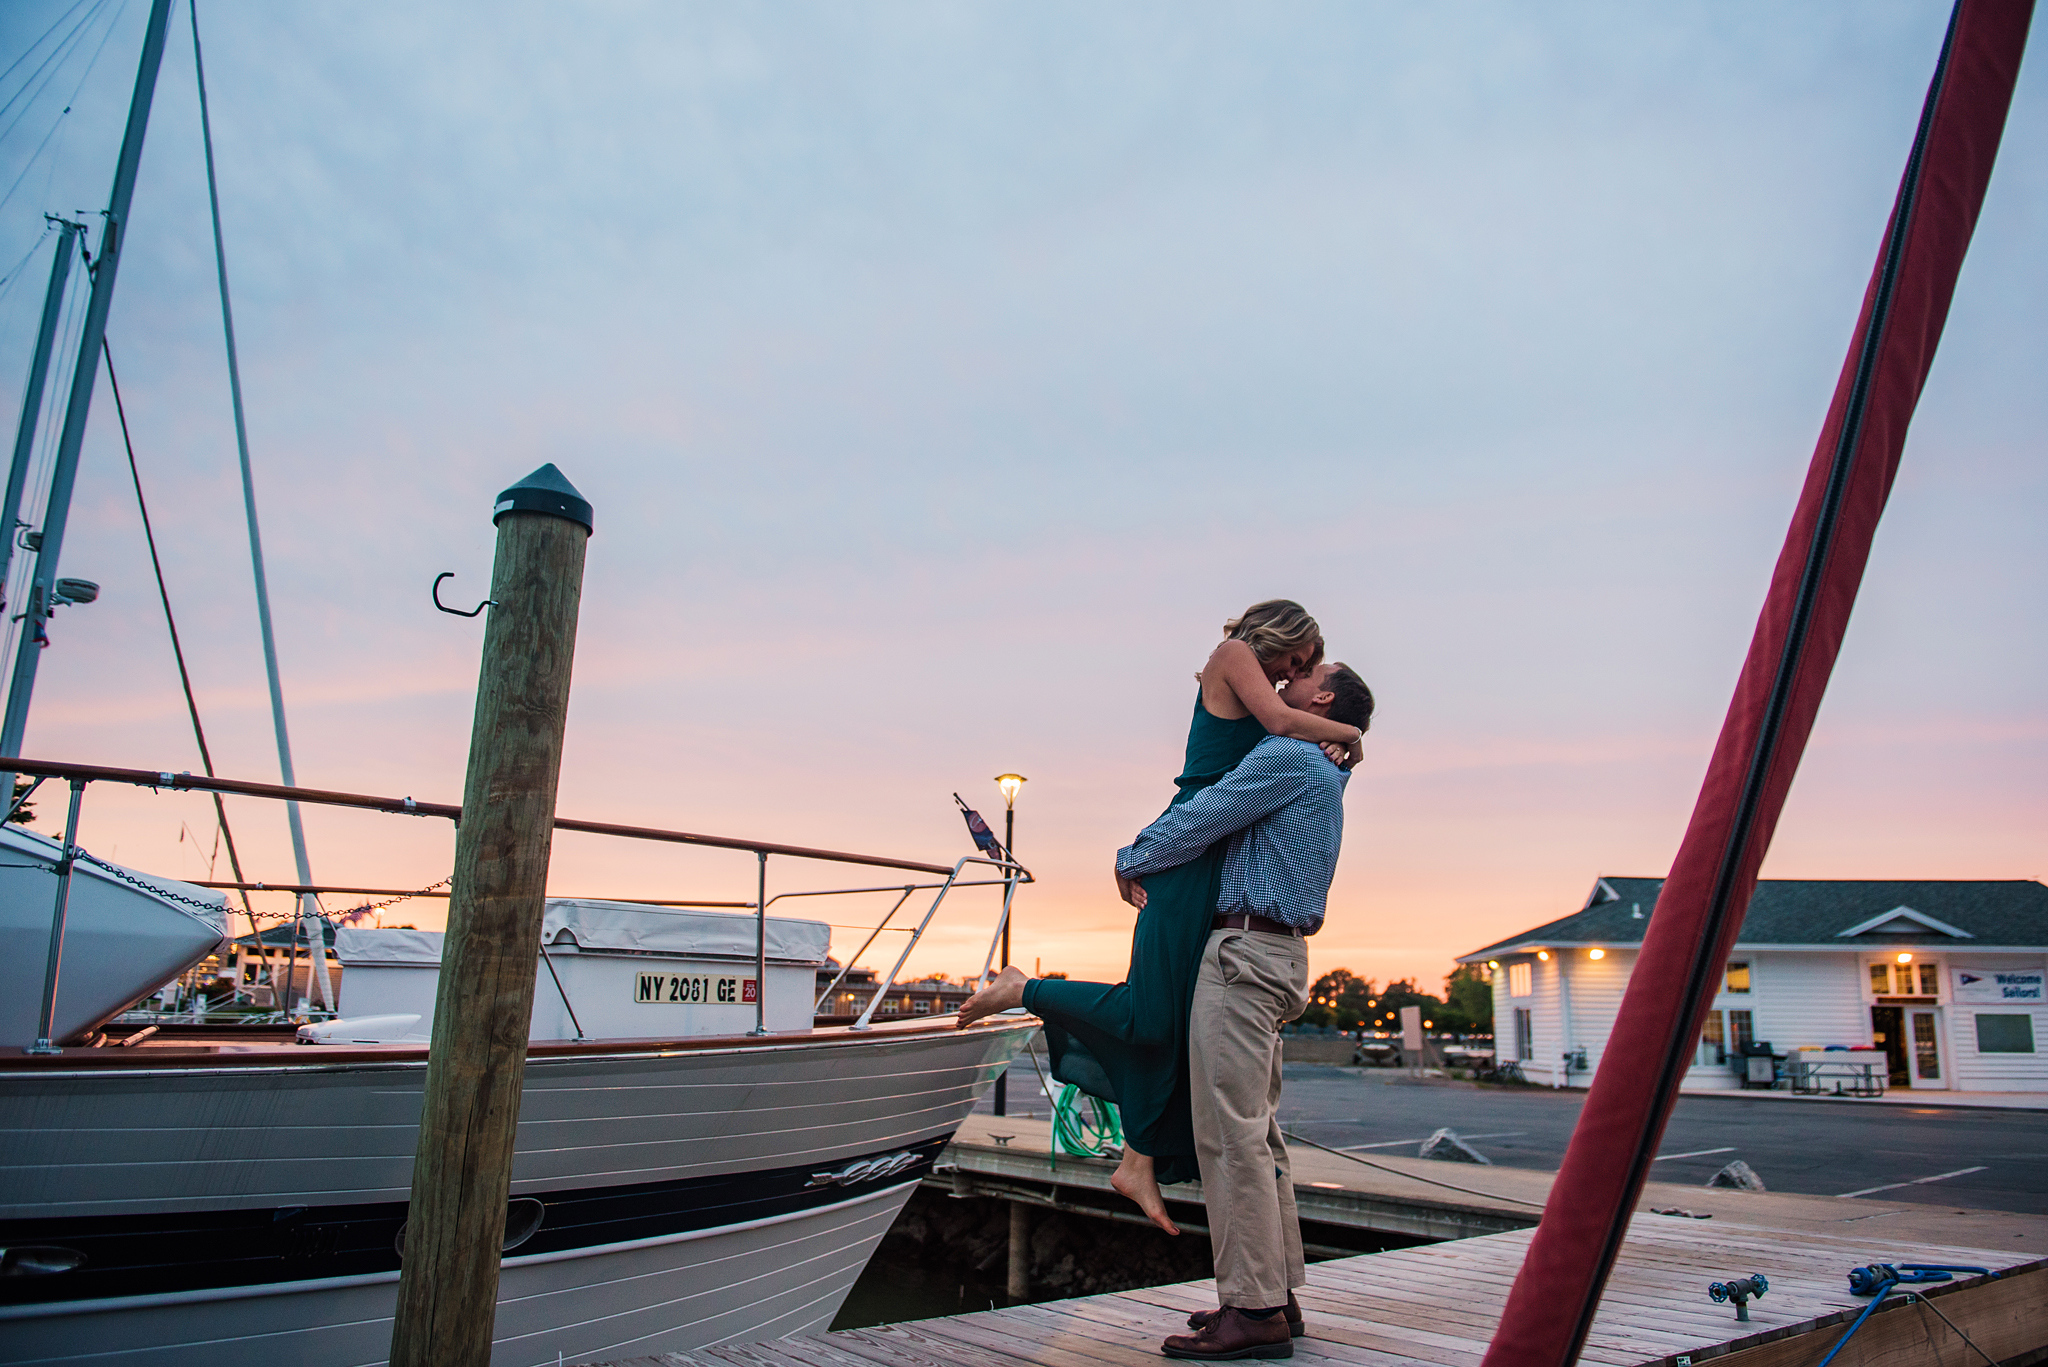 George_Eastman_House_Rochester_Yacht_Club_Rochester_Engagement_Session_JILL_STUDIO_Rochester_NY_Photographer_DSC_8316.jpg